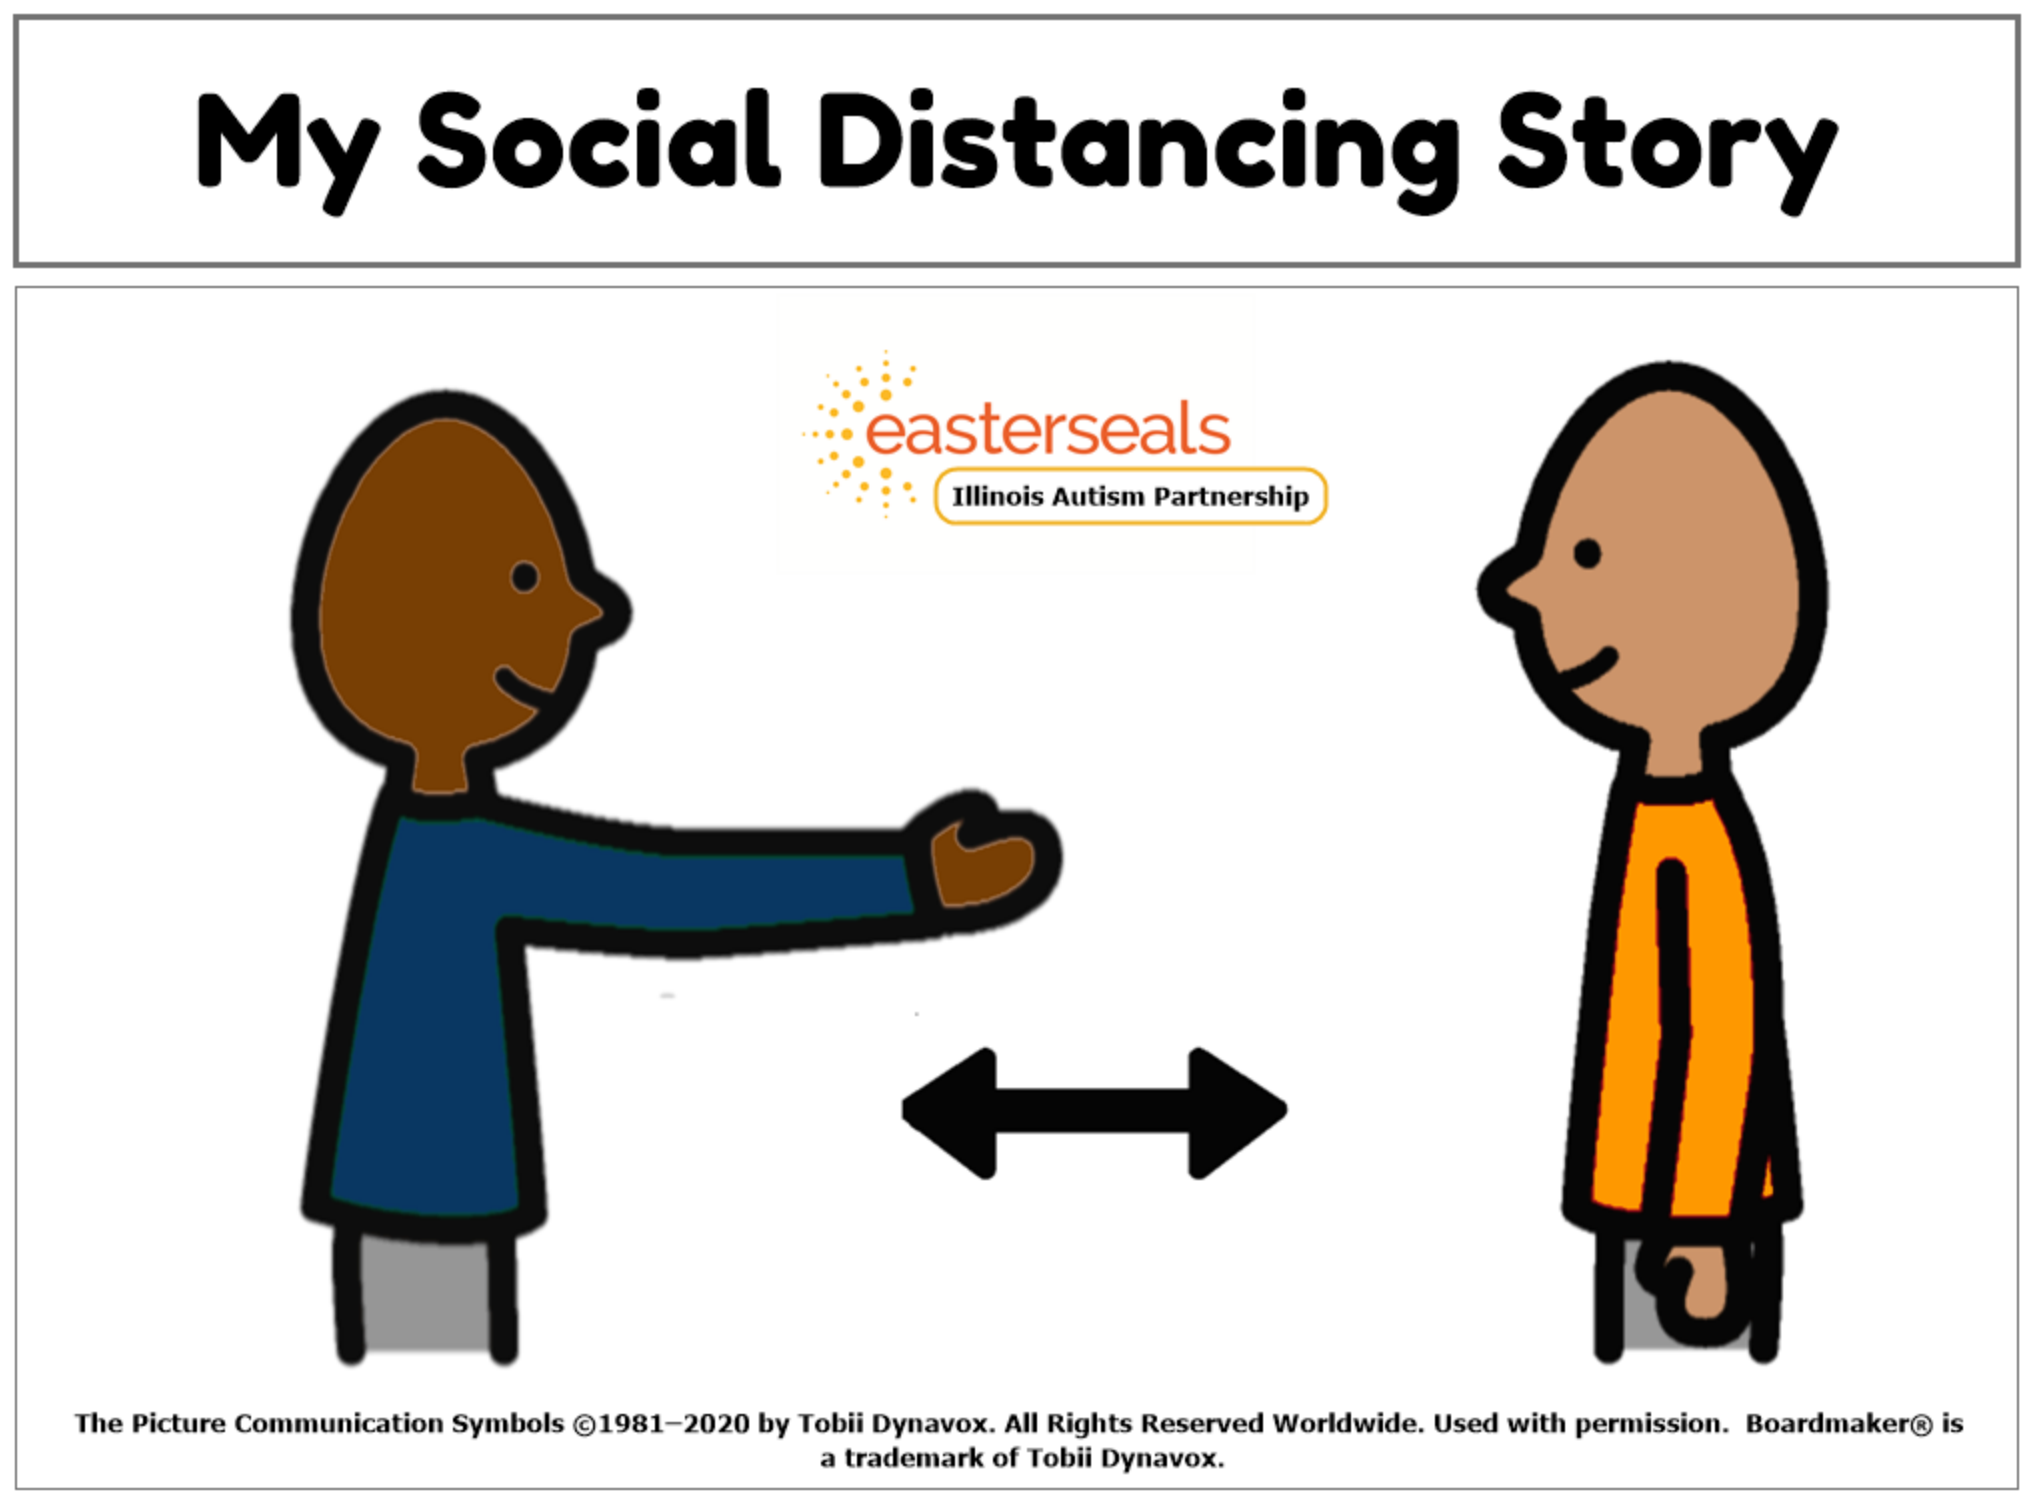 My Social Distancing Story